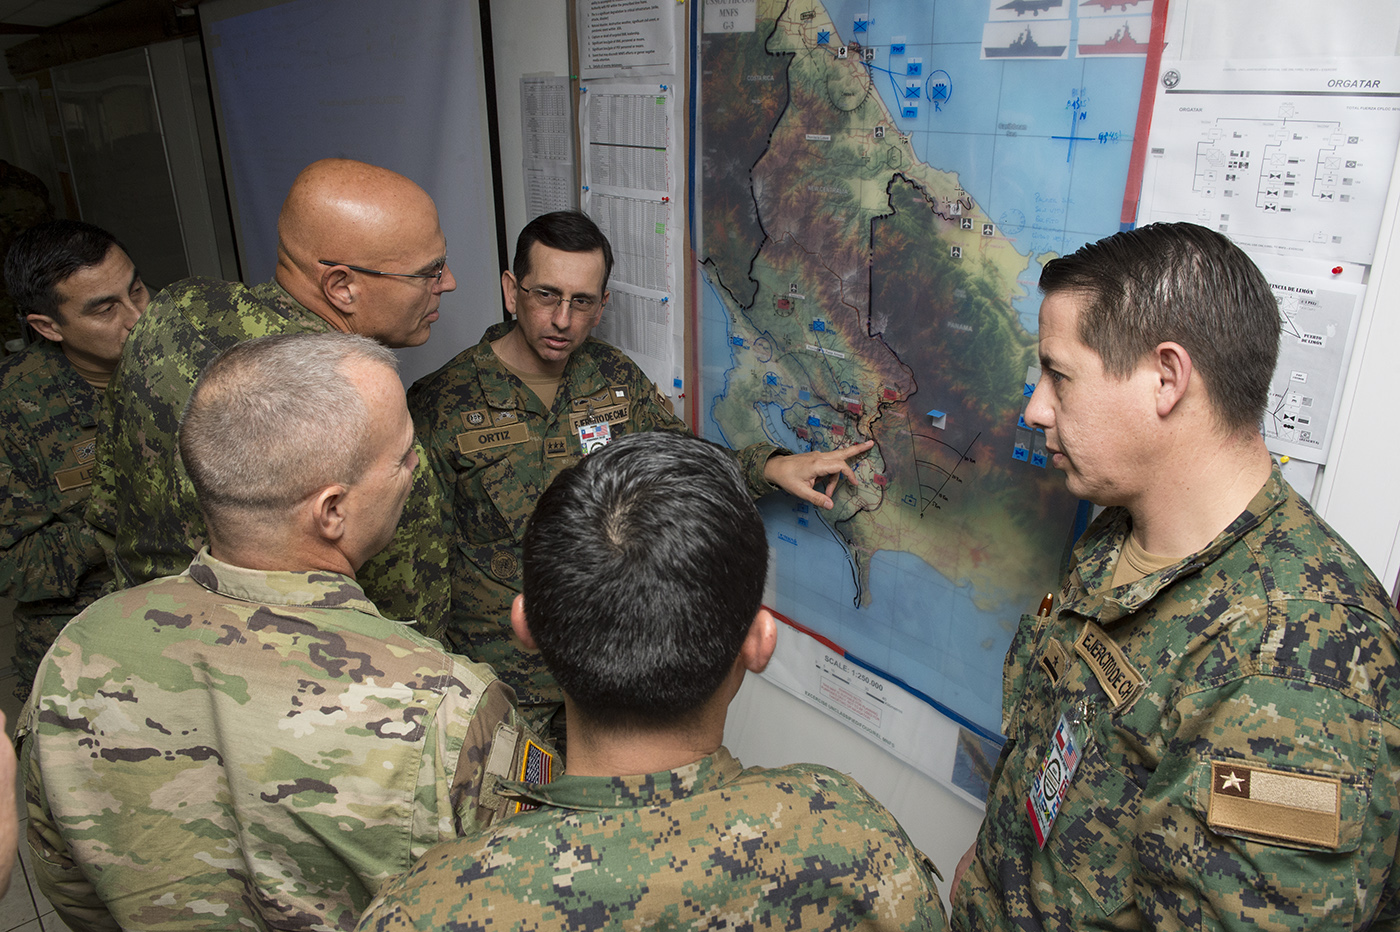 Soldiers discusing strategy and referring to a map